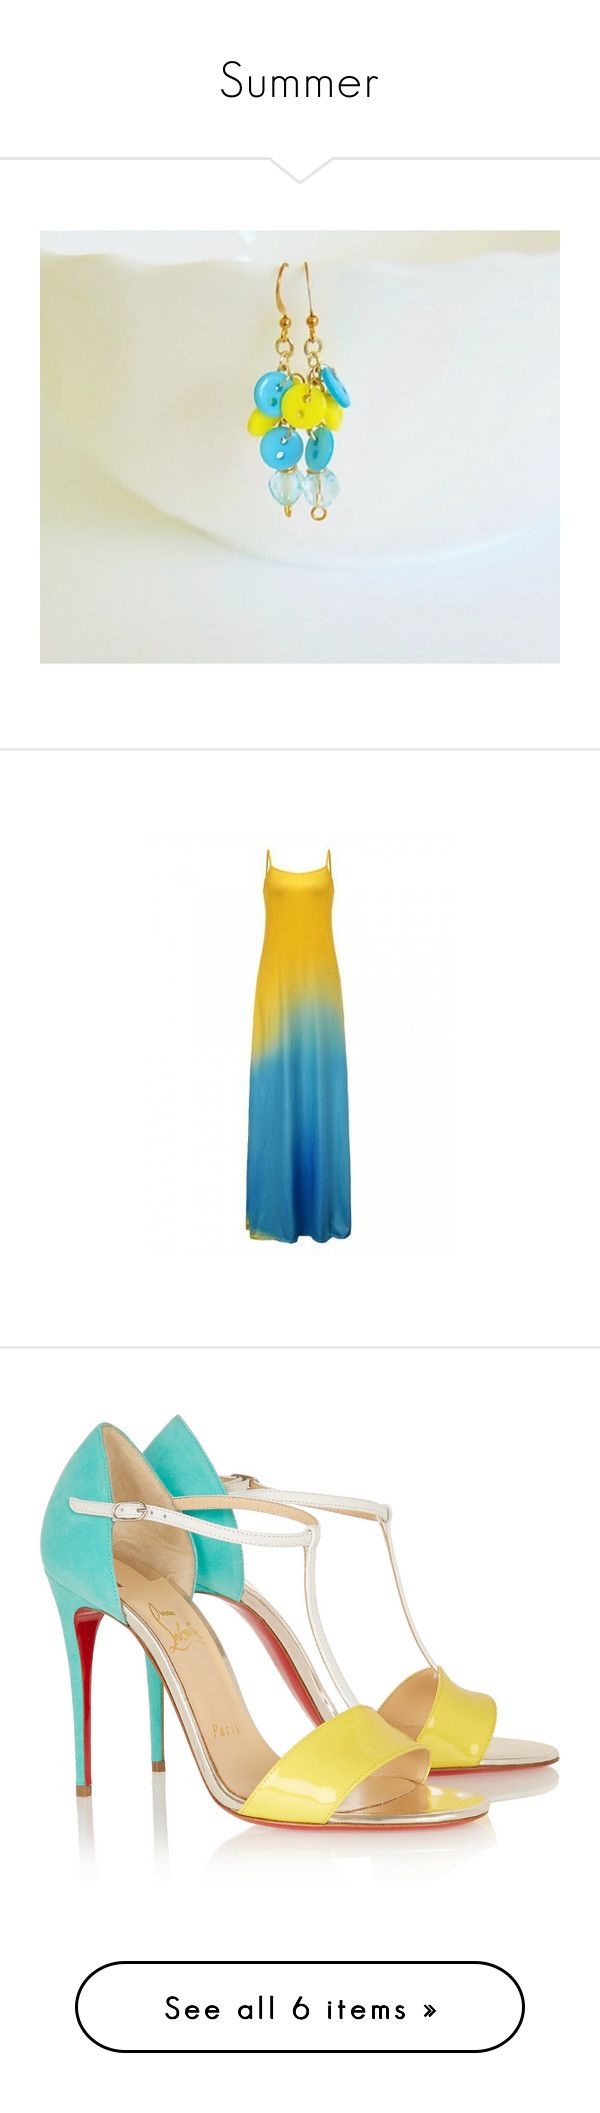 """Summer"" by styledonna on Polyvore featuring jewelry, earrings, dresses, maxi dresses, yellow, evening dresses, maxi cocktail dress, blue cocktail dress, yellow summer dress i yellow cocktail dress"